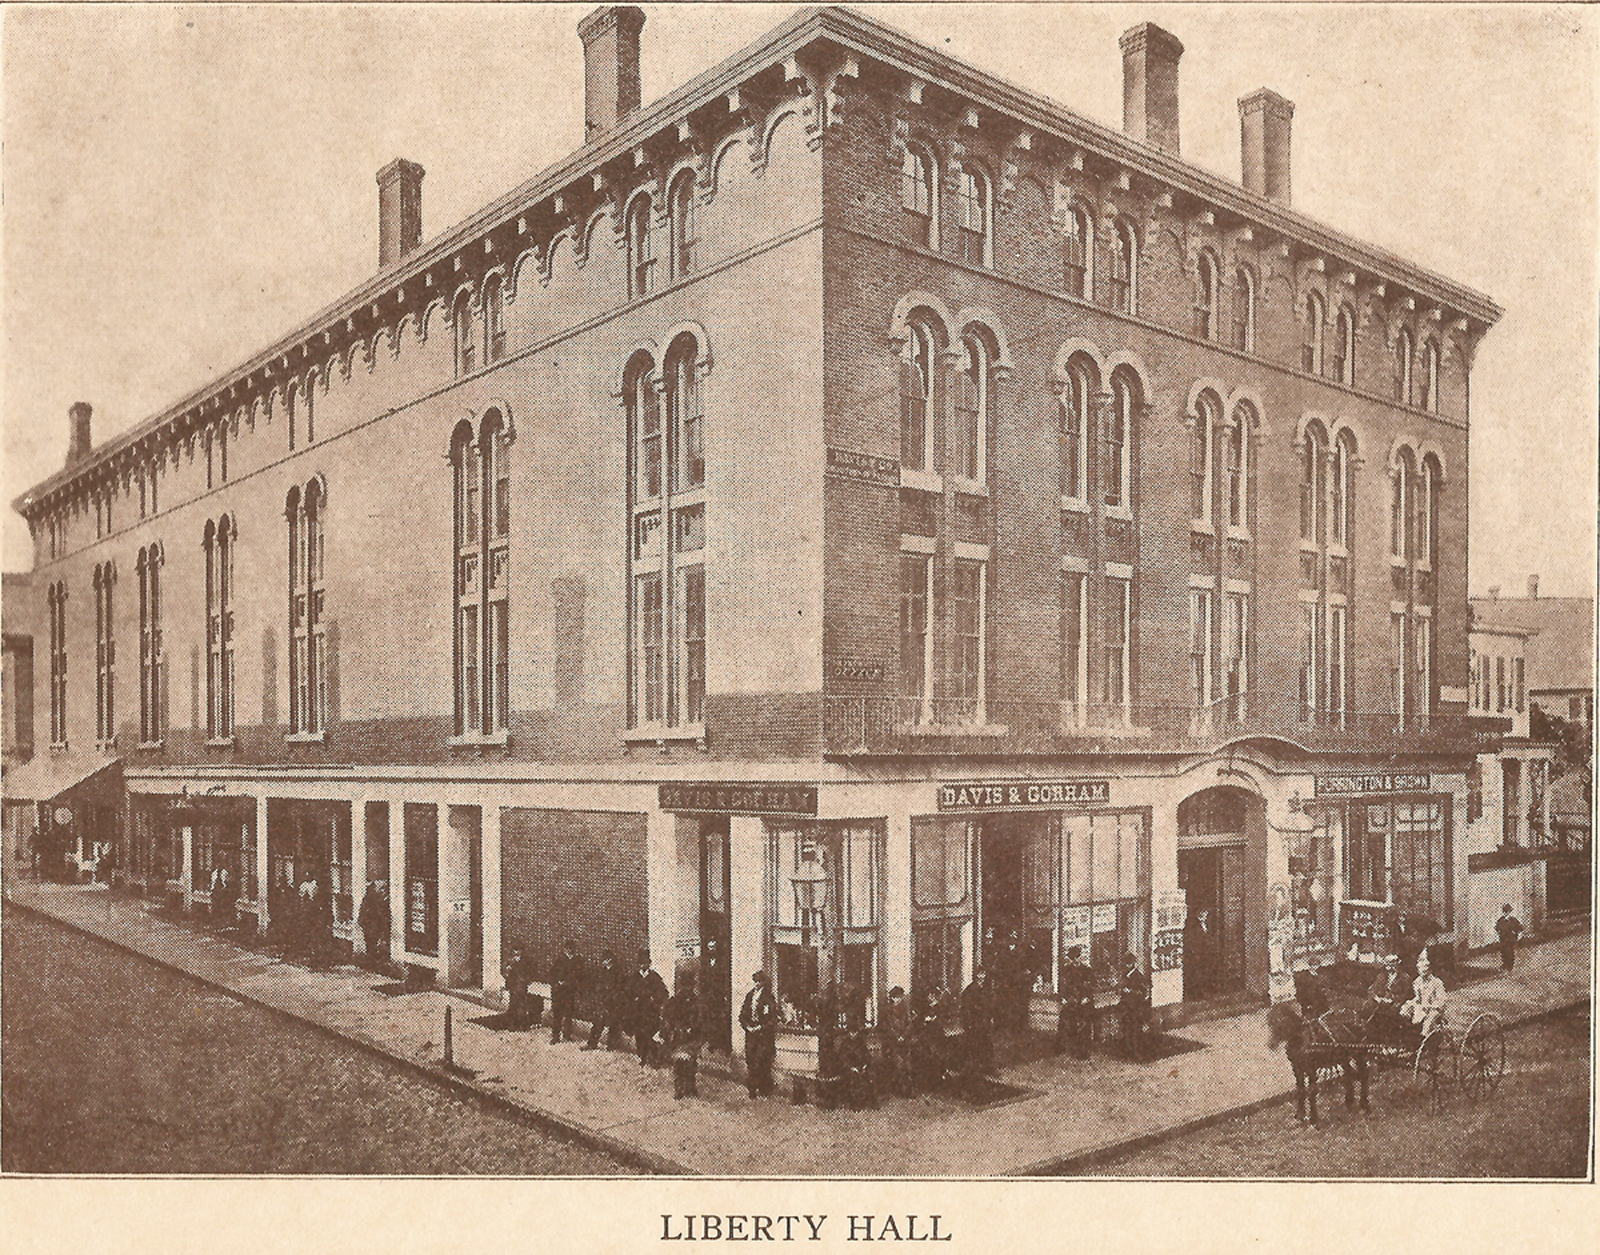 The former Liberty Hall